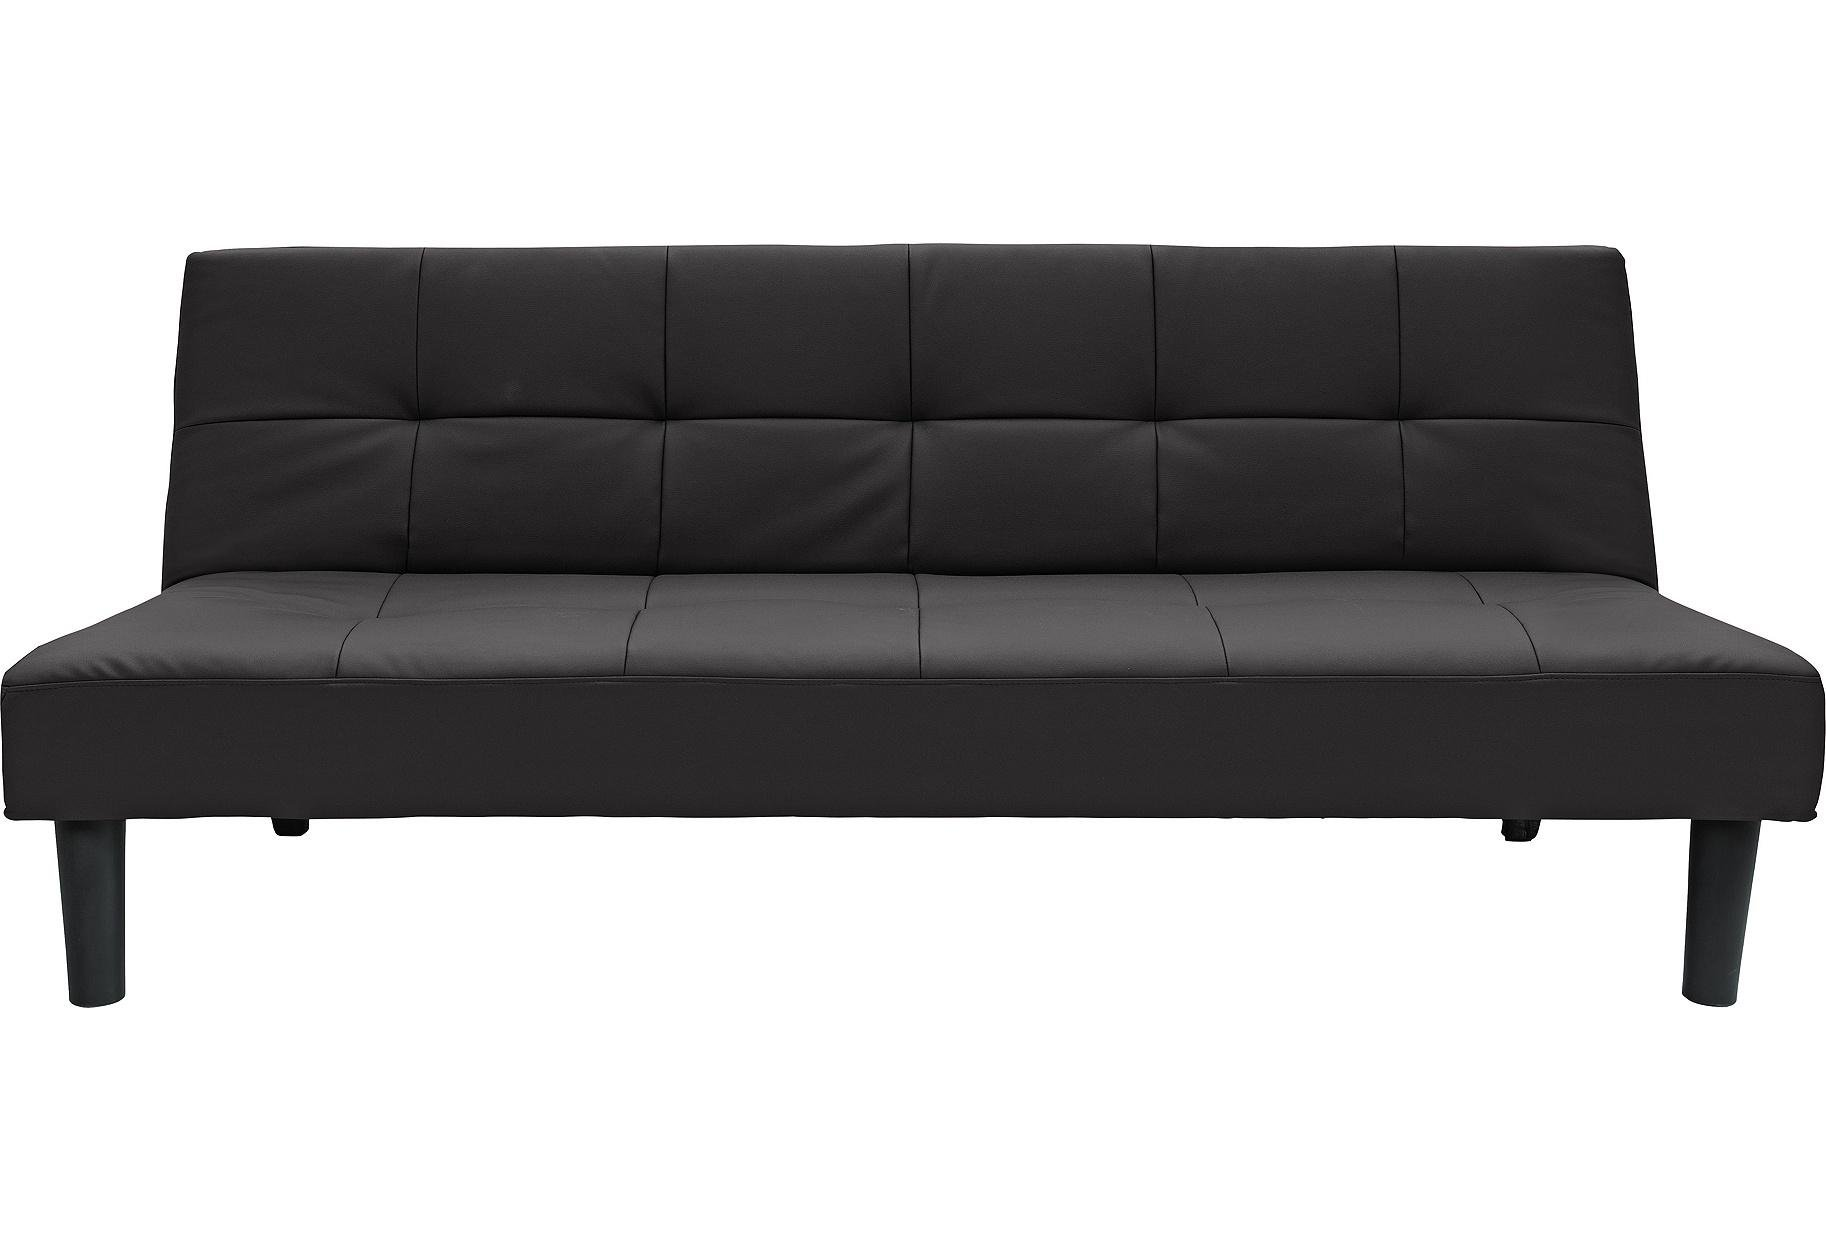 Buy Home Patsy 2 Seater Clic Clac Sofa Bed Black at Argos